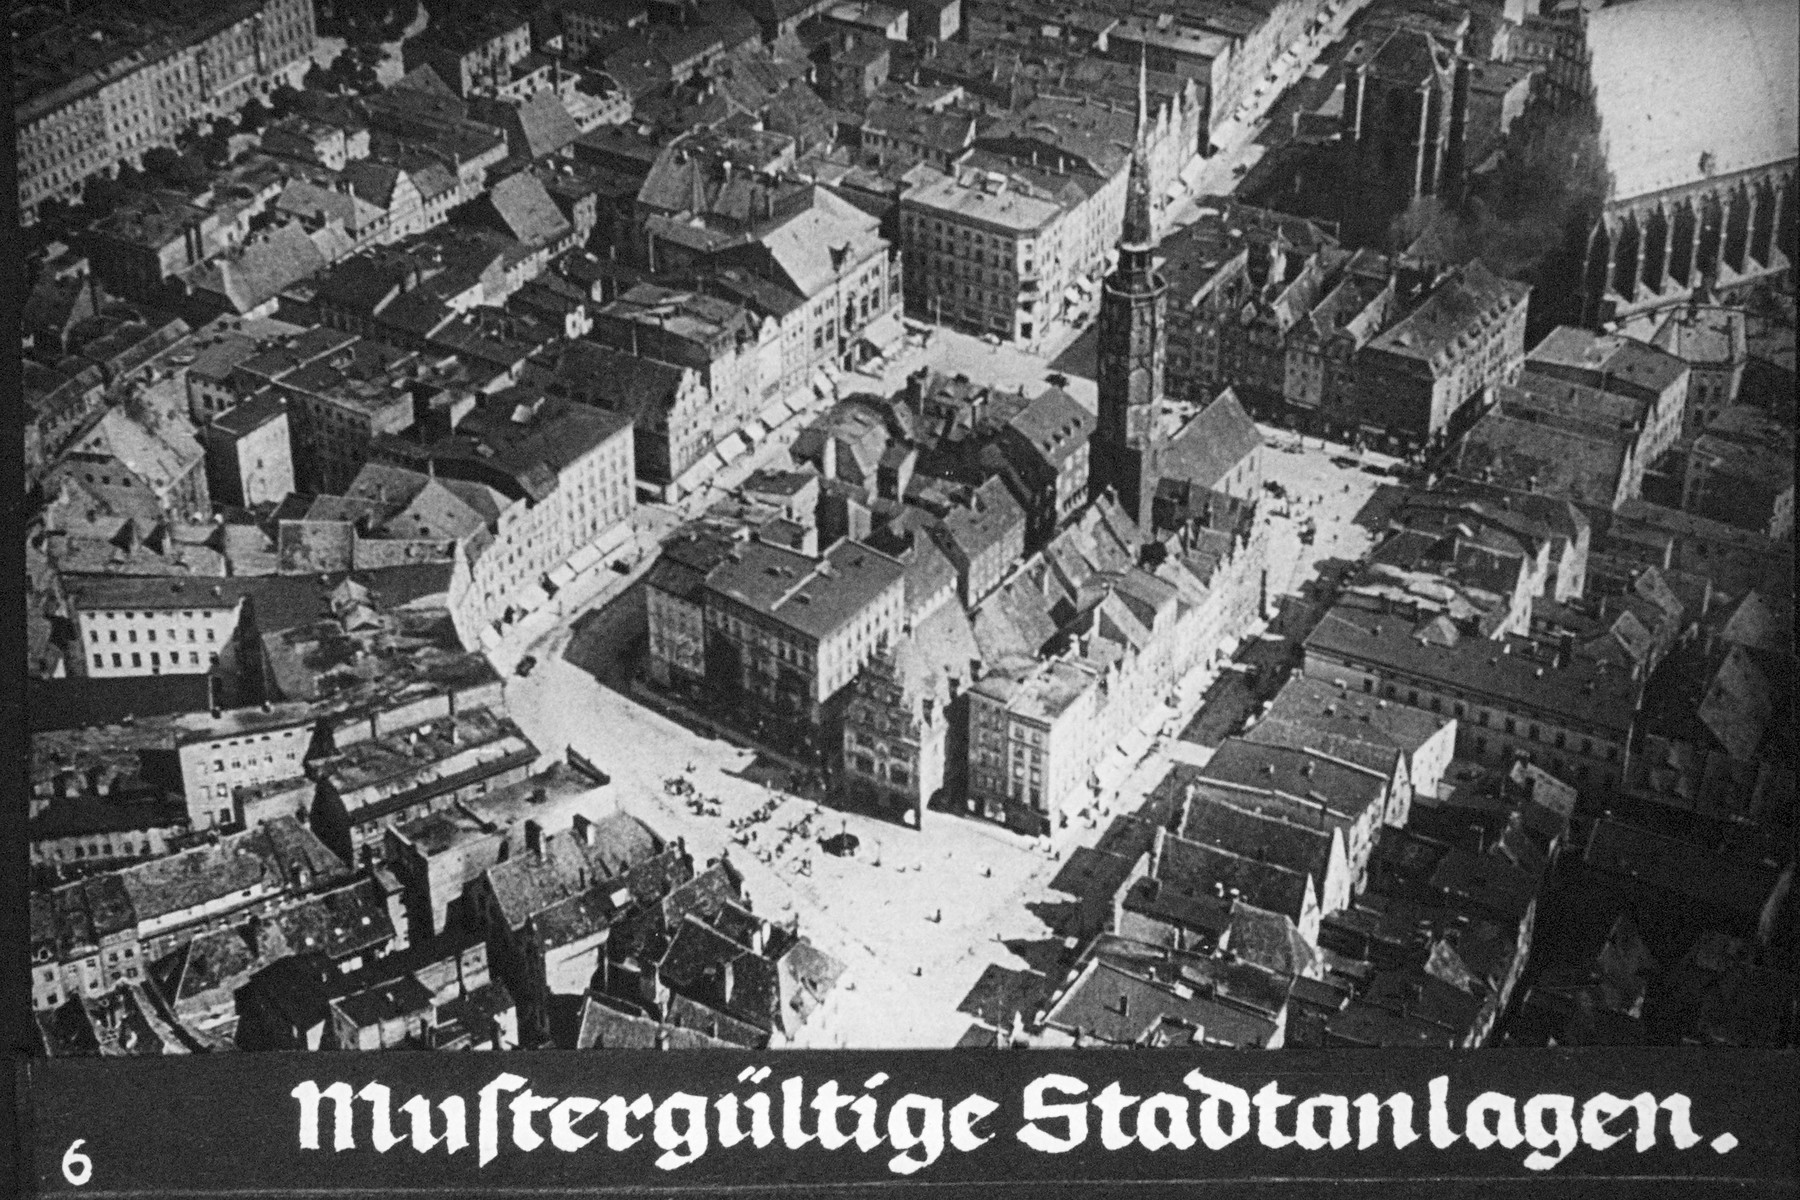 """8th Nazi propaganda slide from Hitler Youth educational material titled """"Border Land Upper Silesia.""""  Mustergültige Stadtanlagen. // Exemplary city facilities."""